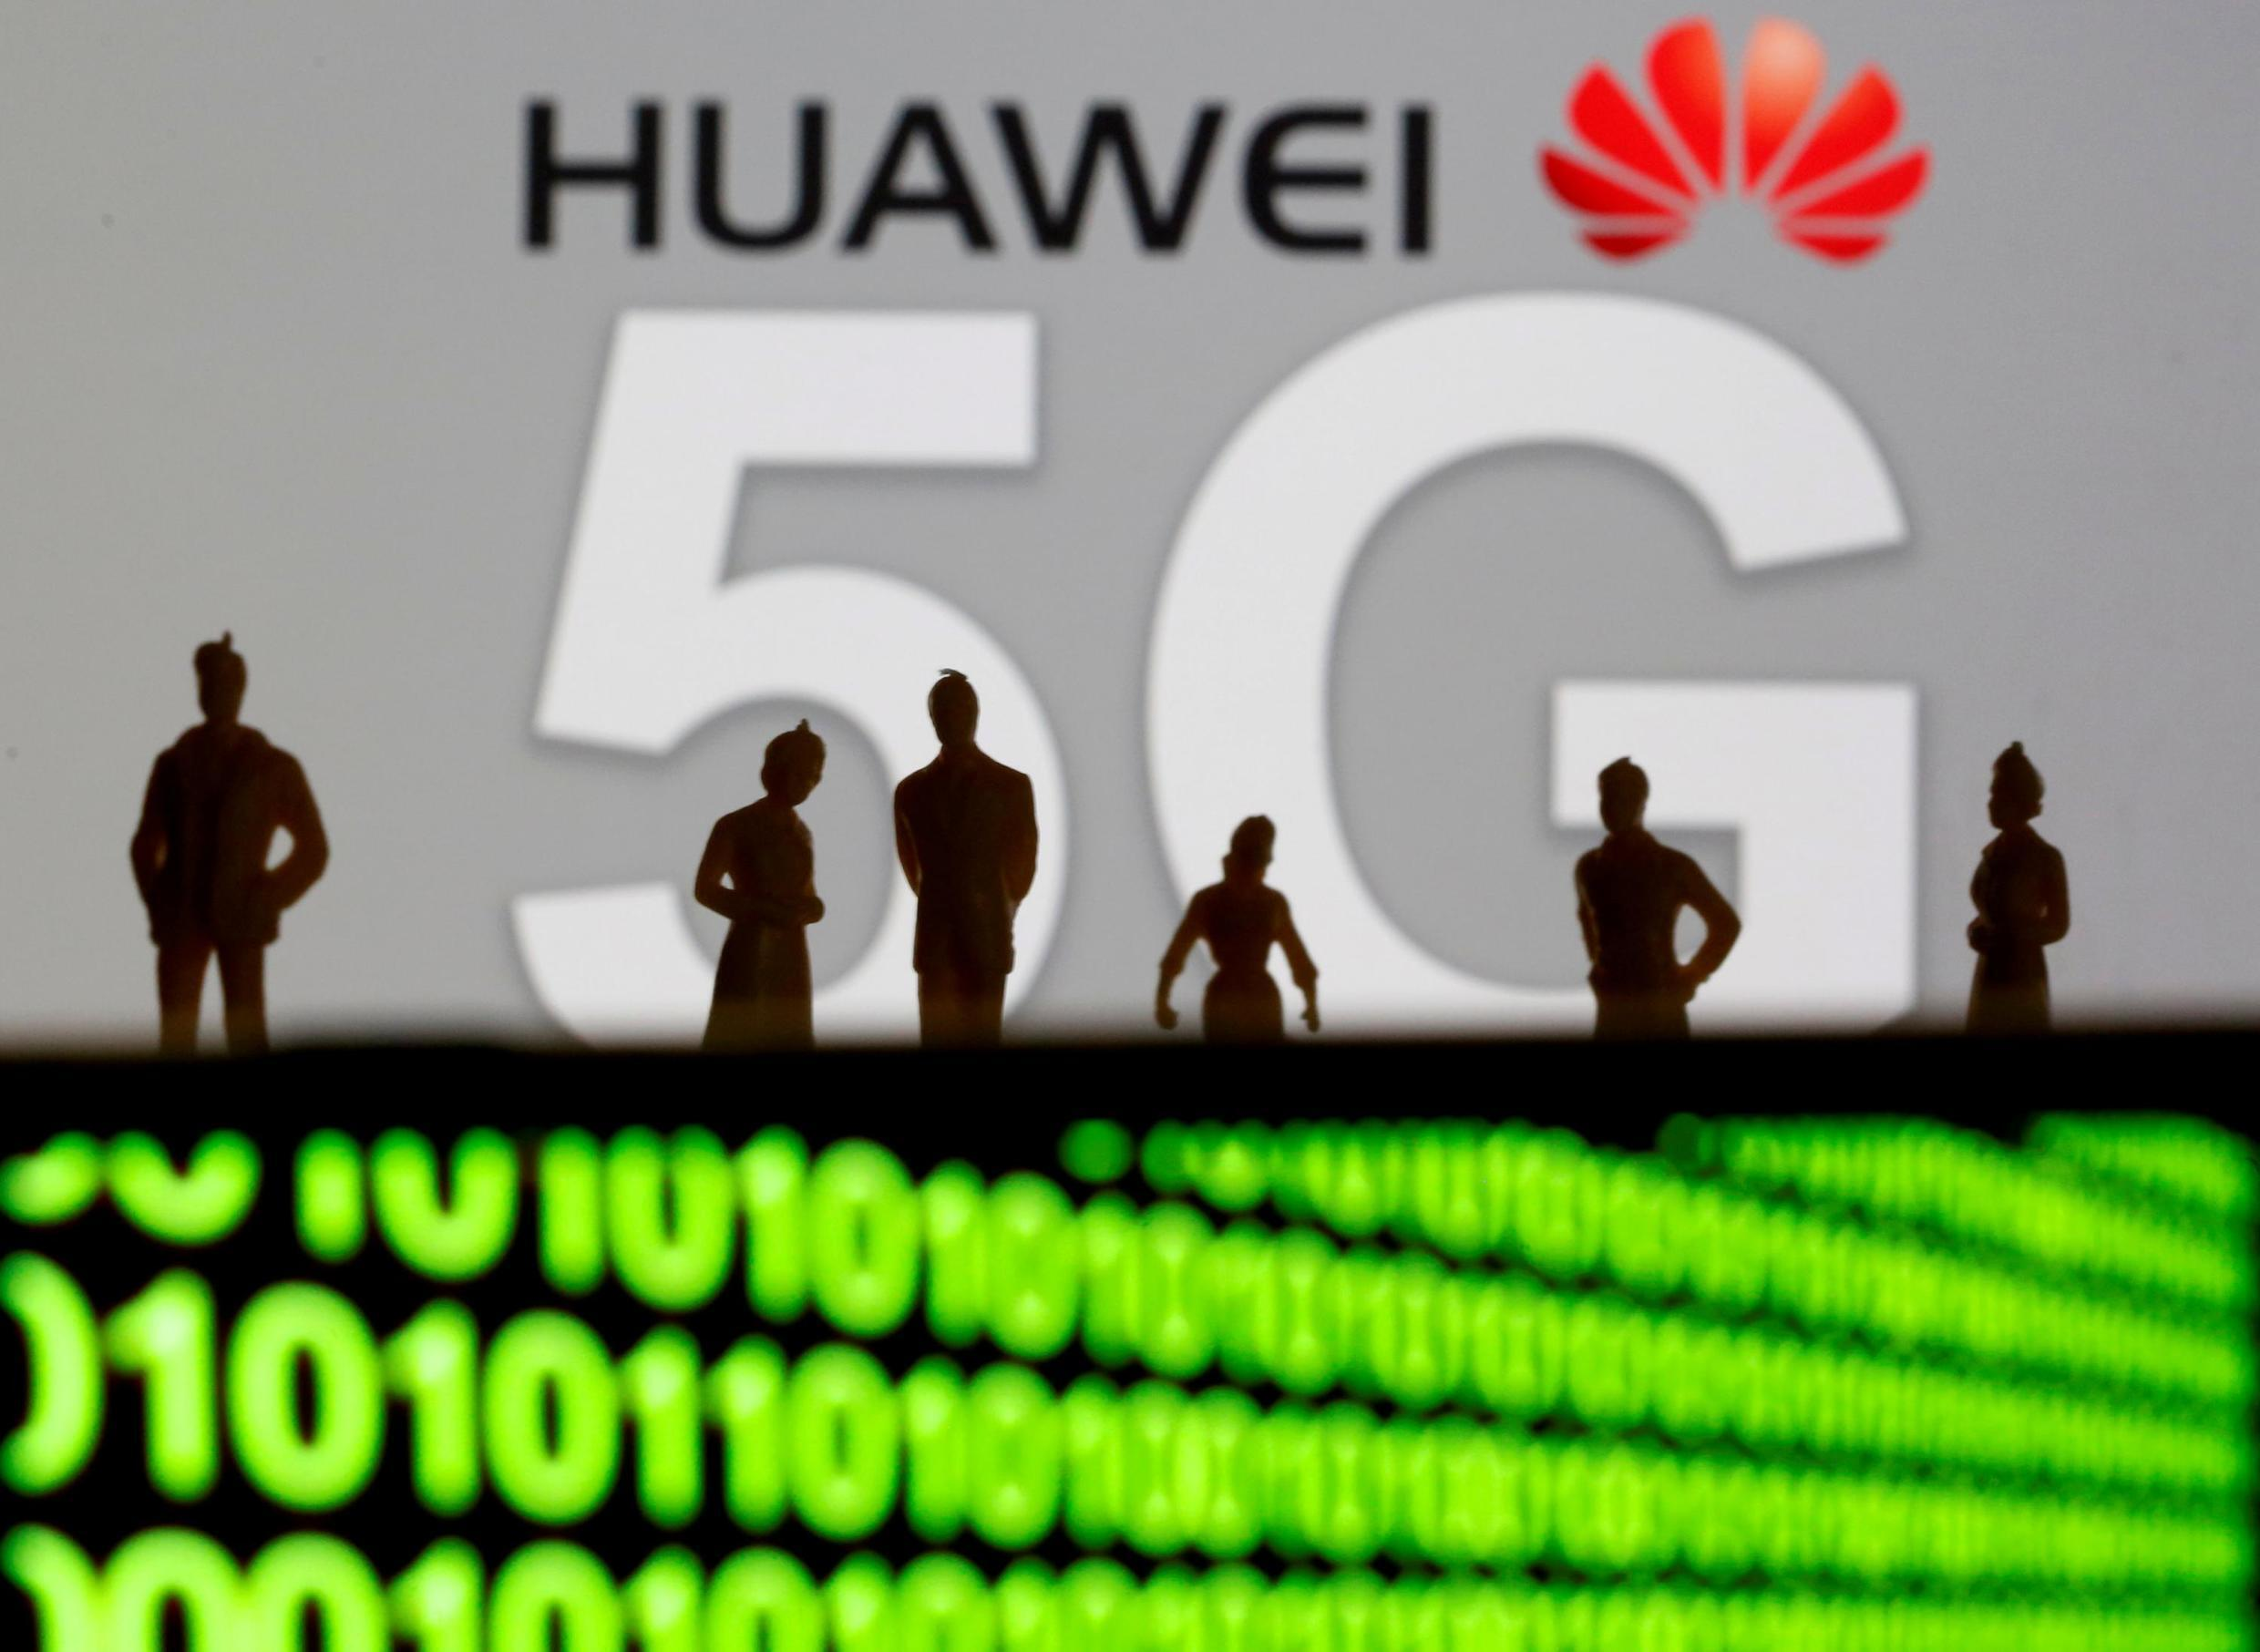 France expects to raise over 2,17 billion euros through the sales of frequencies for the 5G spectrum.